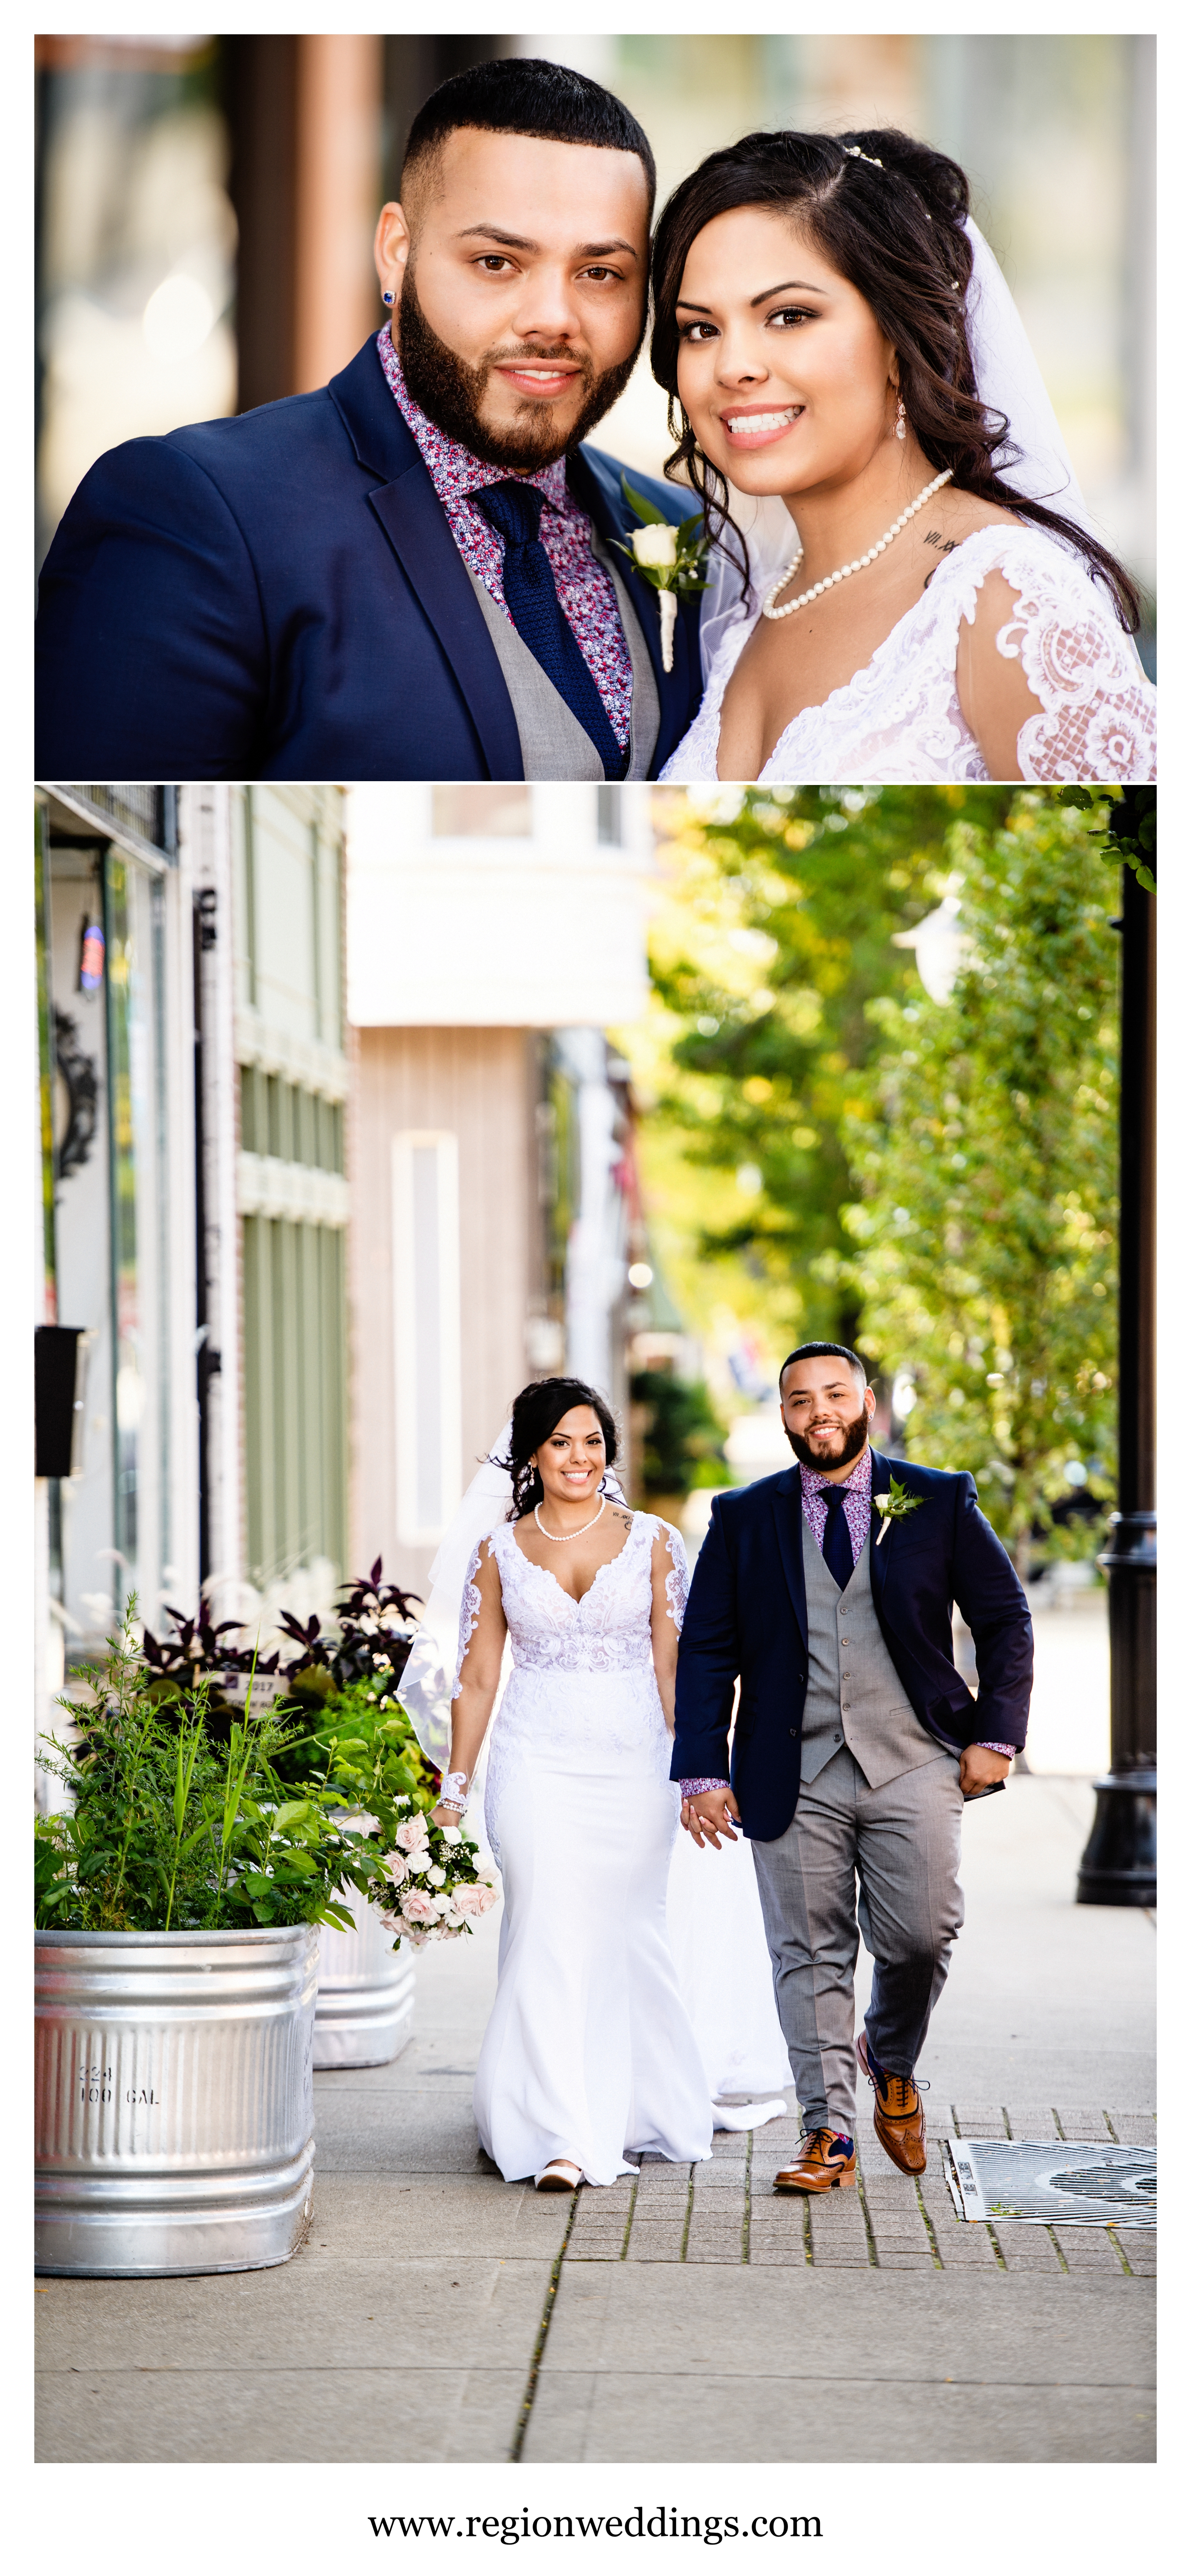 The bride and groom show off their happiness as they walk the city streets.